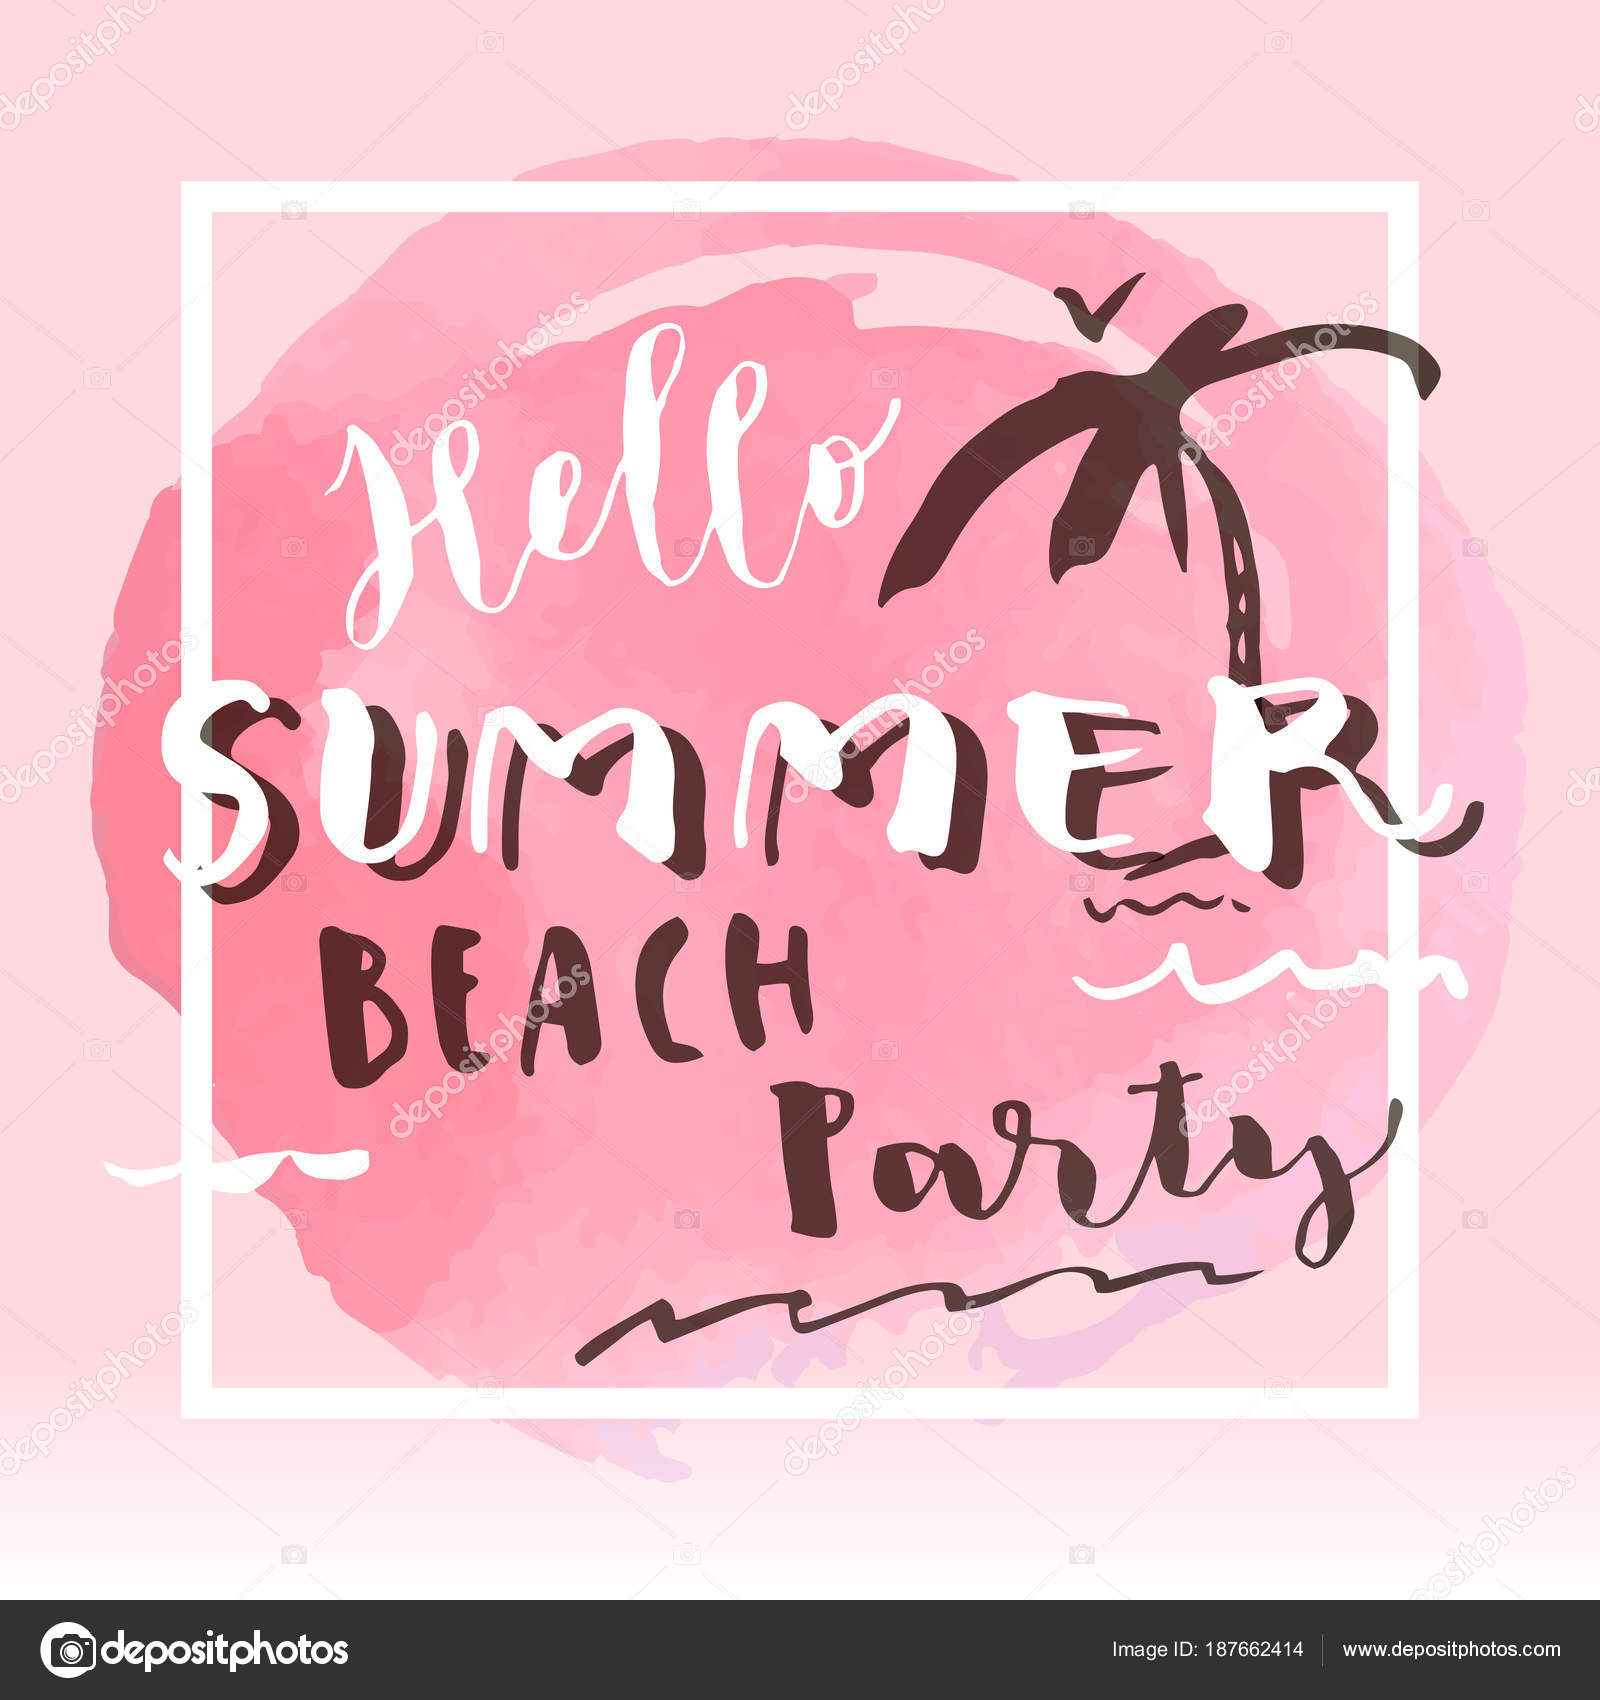 Hello Summer Beach Party Hand Drawn Card On Artistic Watercolor Blotch  Background. Brush Hand Lettering, Modern Calligraphy With A Frame.